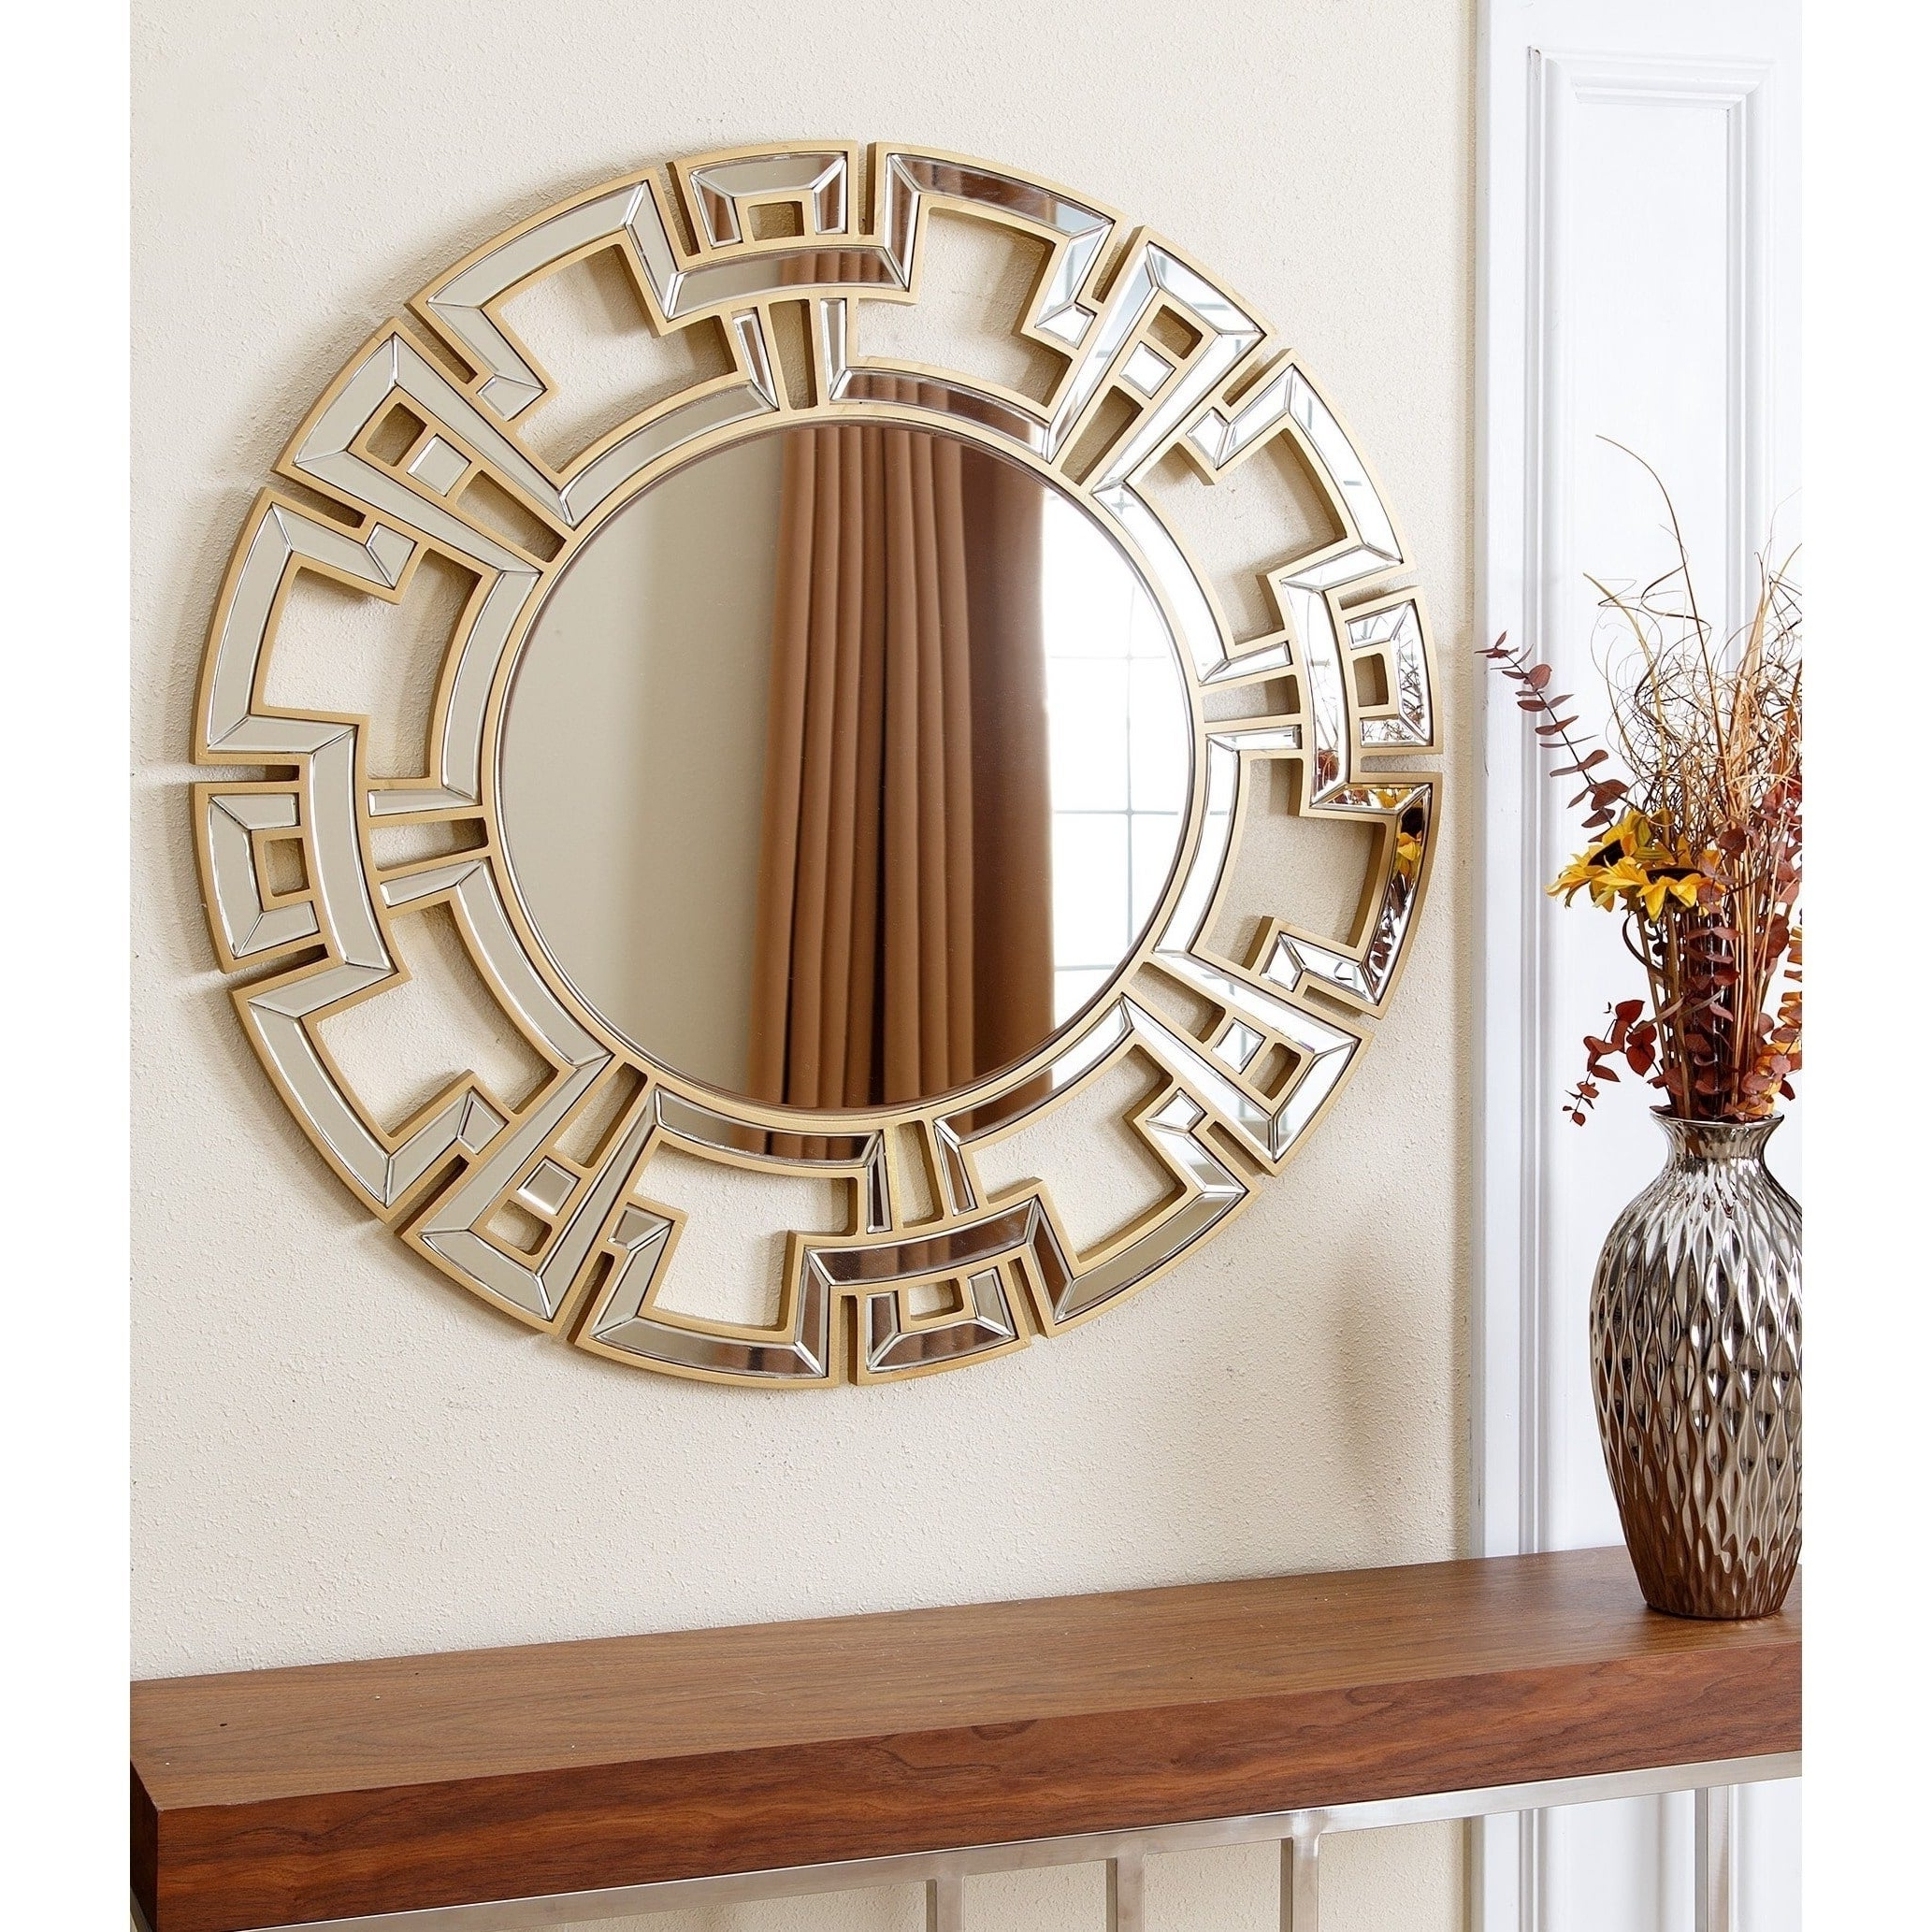 Popular Entryway Wall Mirrors Throughout Details About Abbyson Wall Mirror Accent Gold Wood Round Crafted Entryway  Mounted Geometric (View 16 of 20)